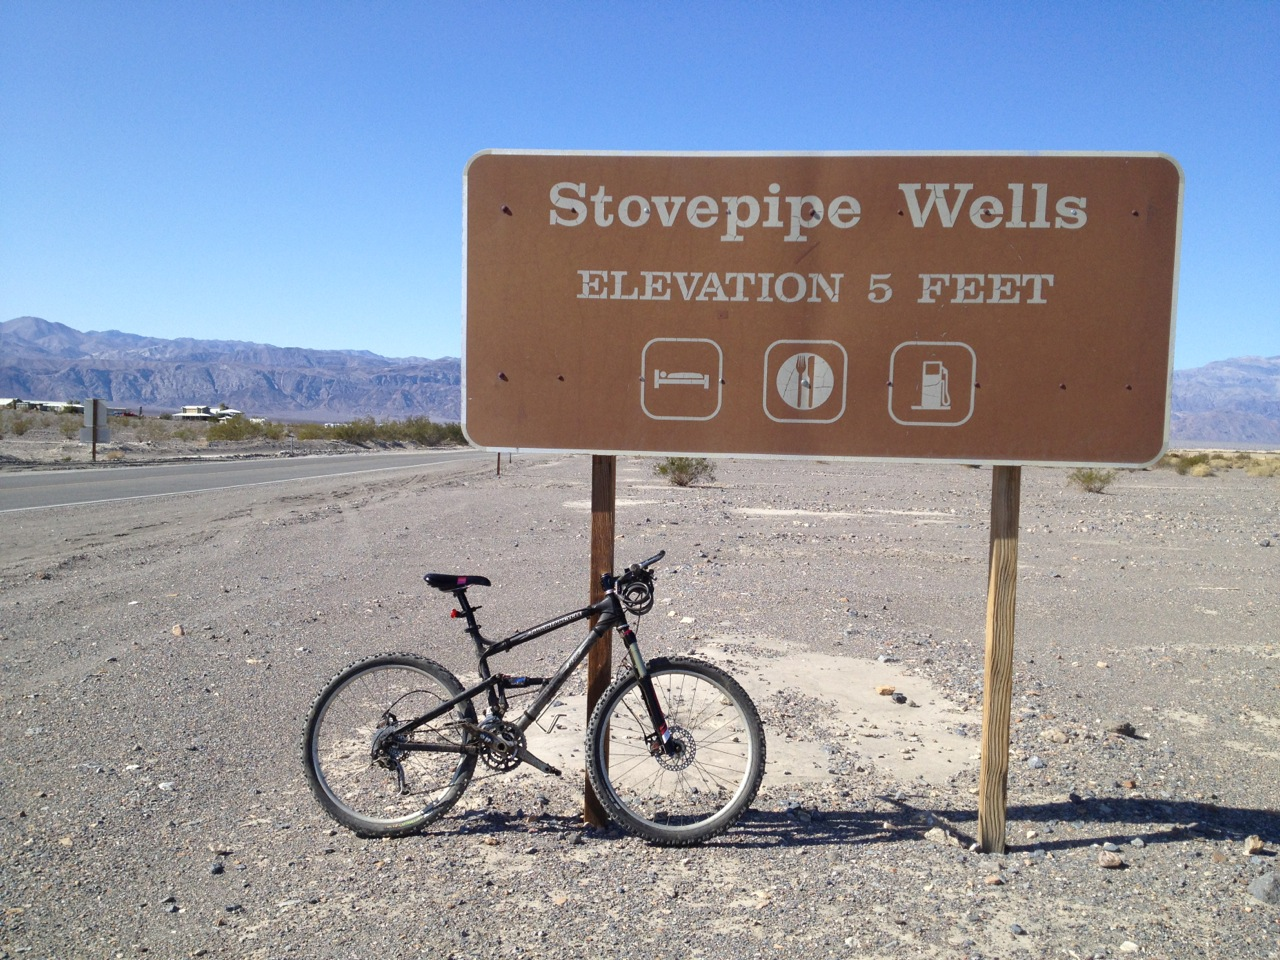 My trusty bicycle resting against the sign for Stovepipe Wells after the ride.